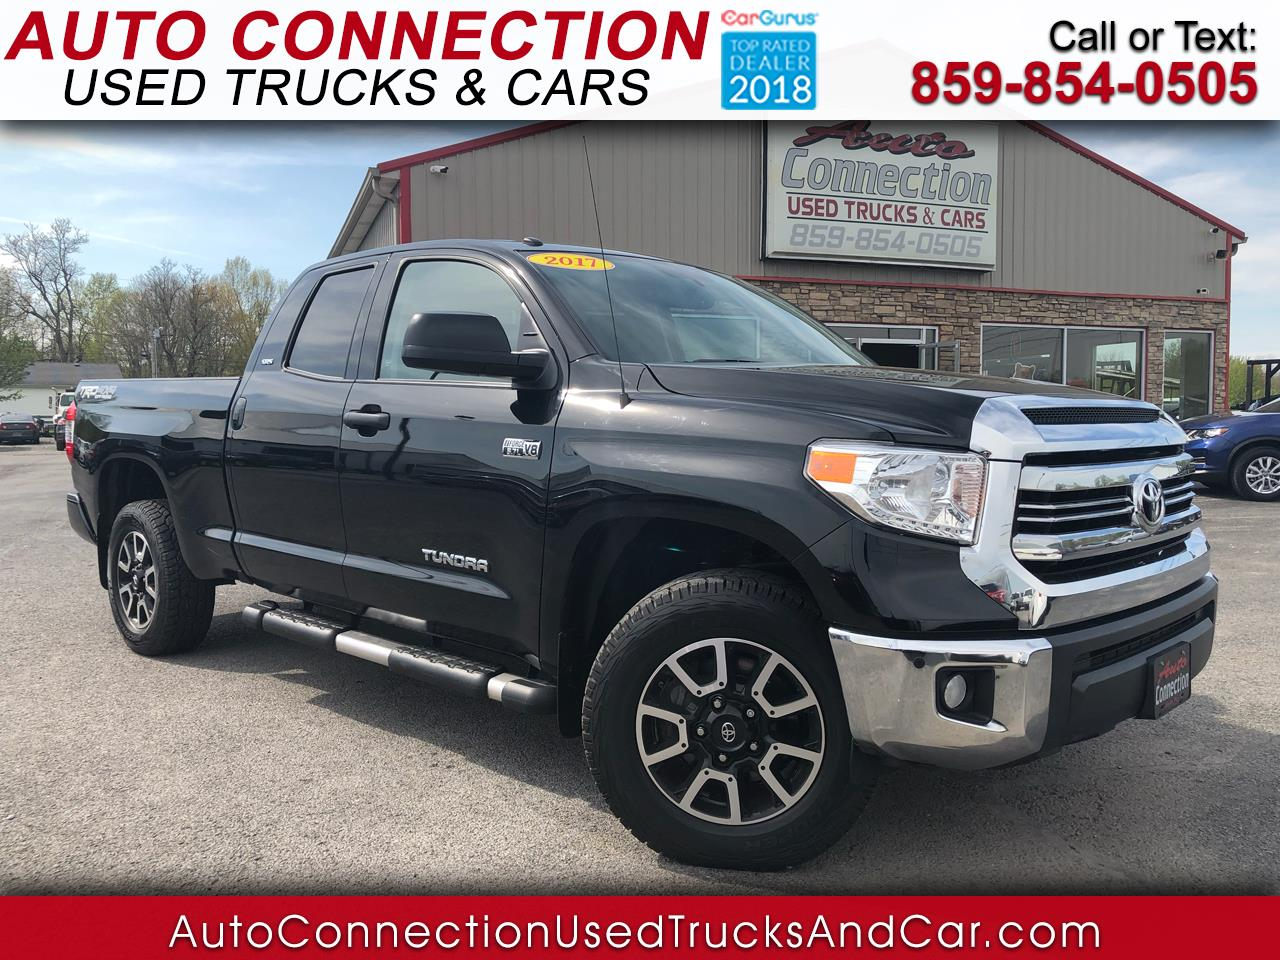 2017 Toyota Tundra 4WD TRD Pro Double Cab 6.5' Bed 5.7L (Natl)